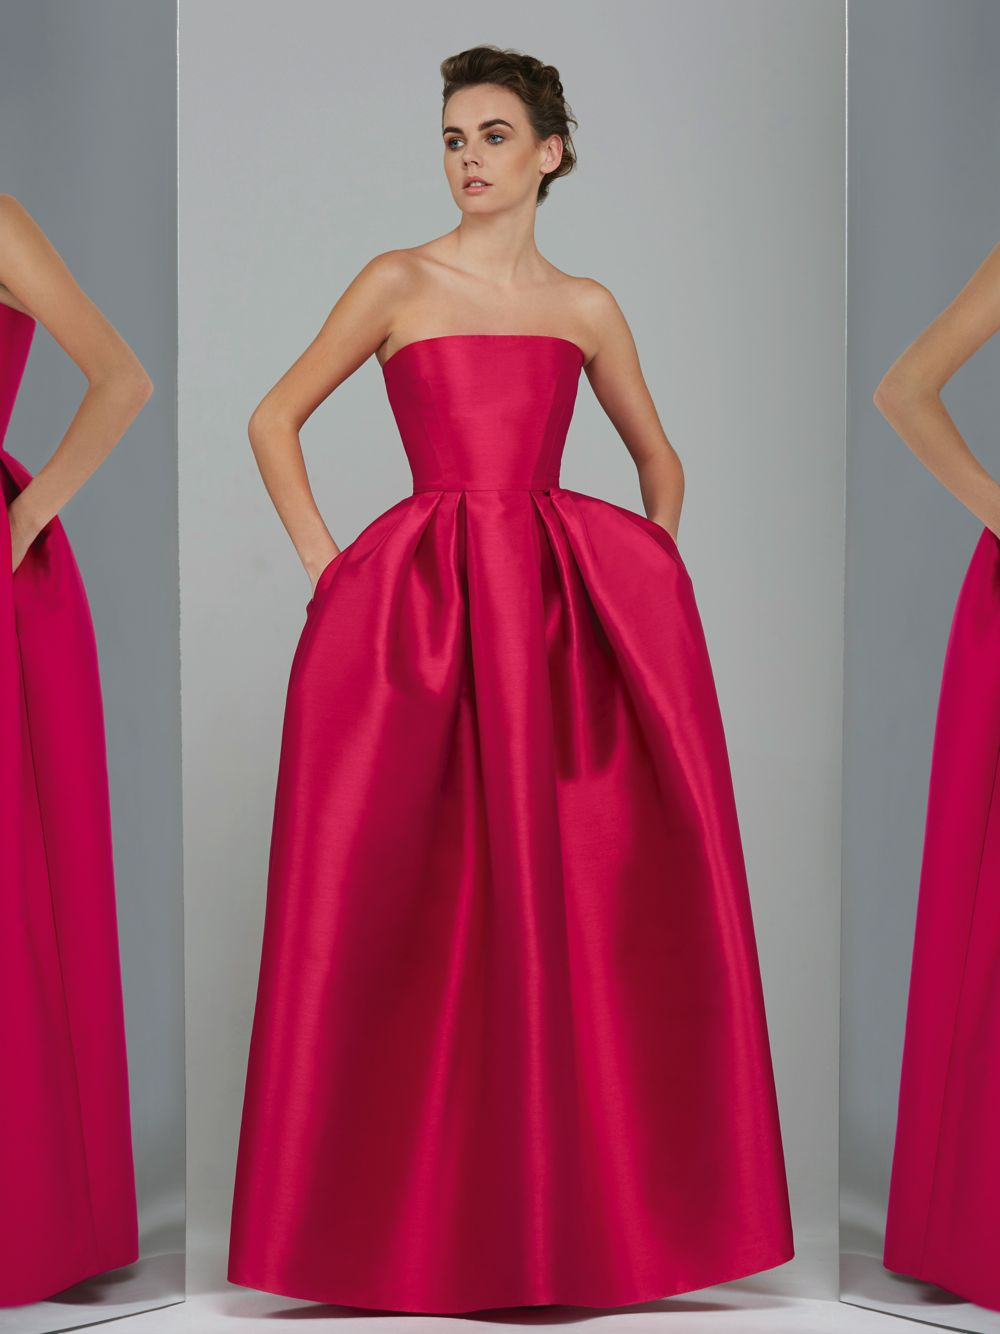 Strapless Volume Gown